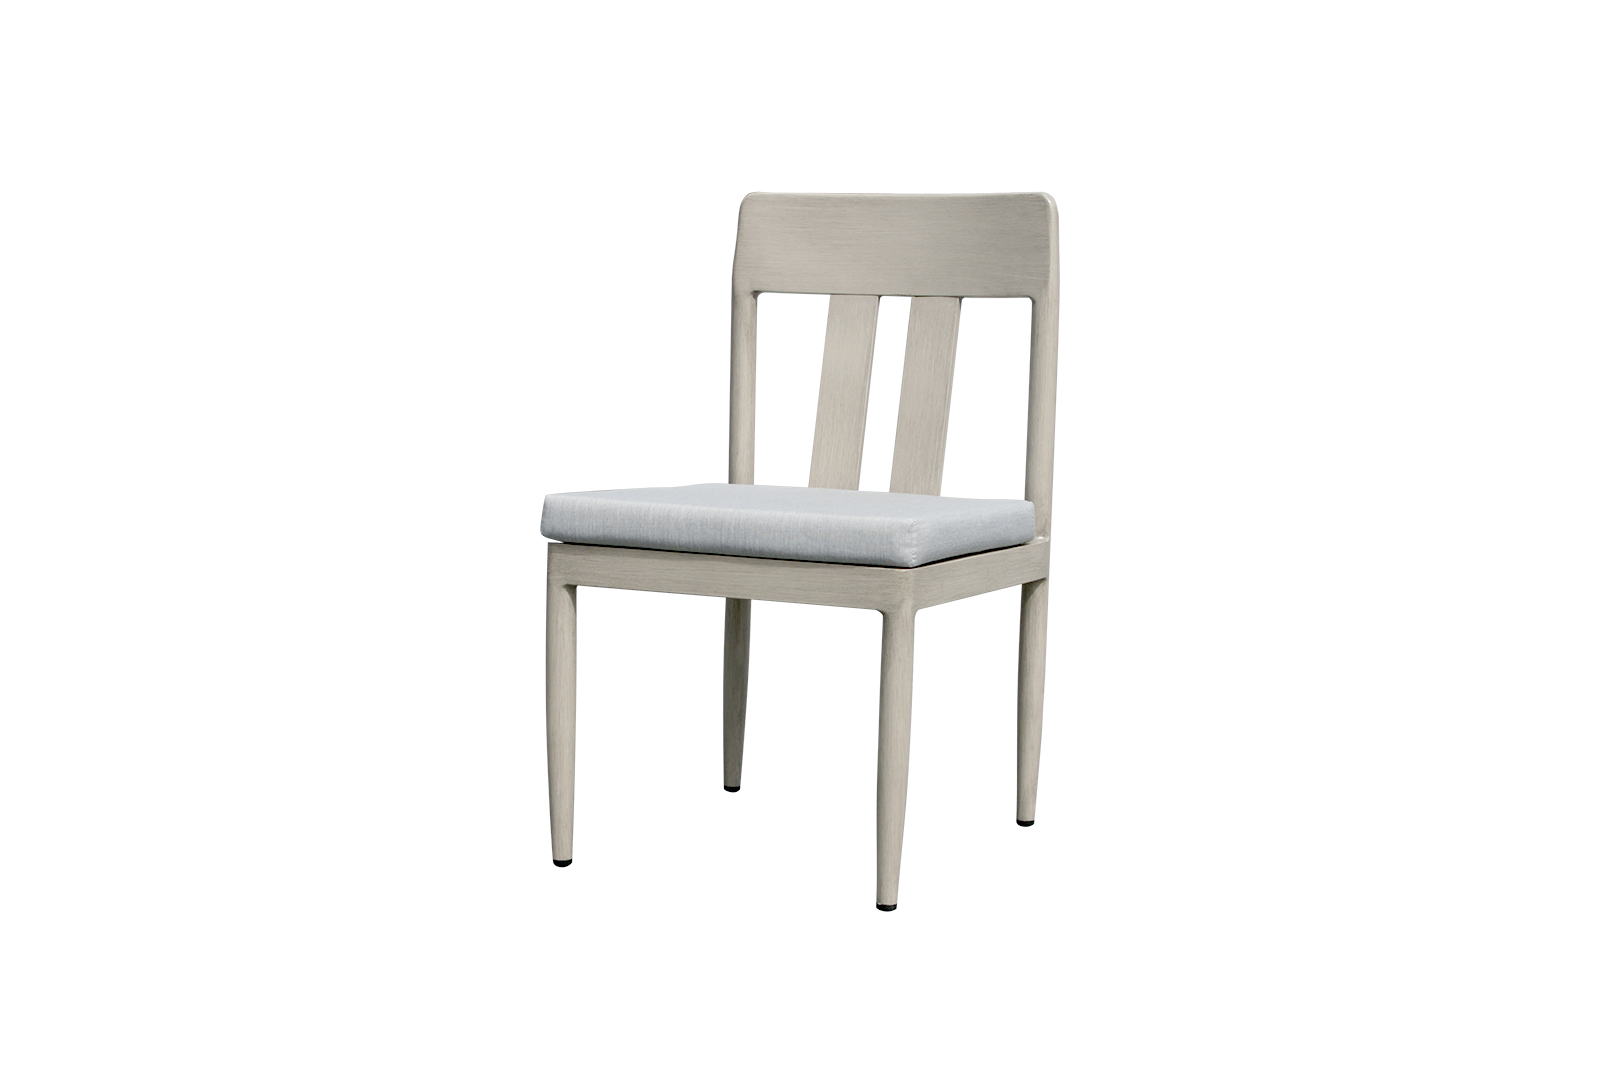 Polanco dining side chair with Idol Frost seat cushion.